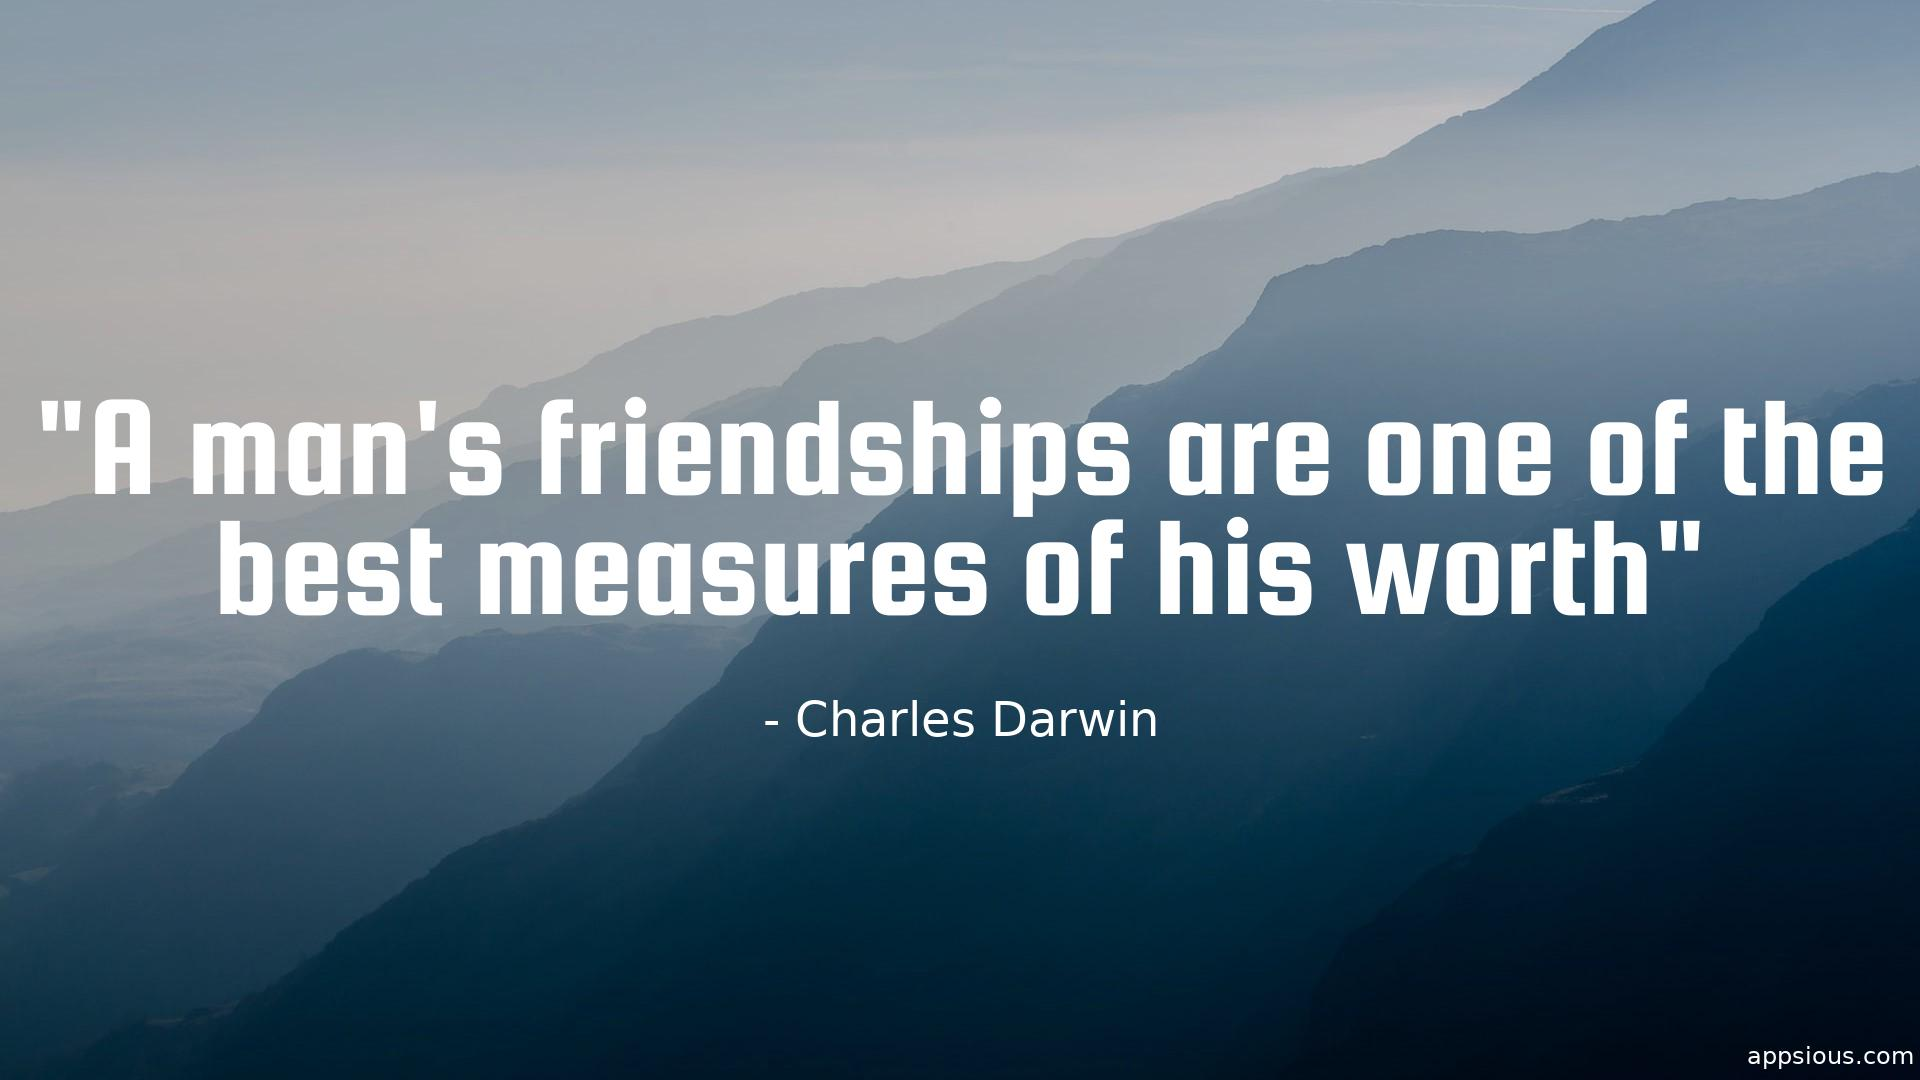 A man's friendships are one of the best measures of his worth